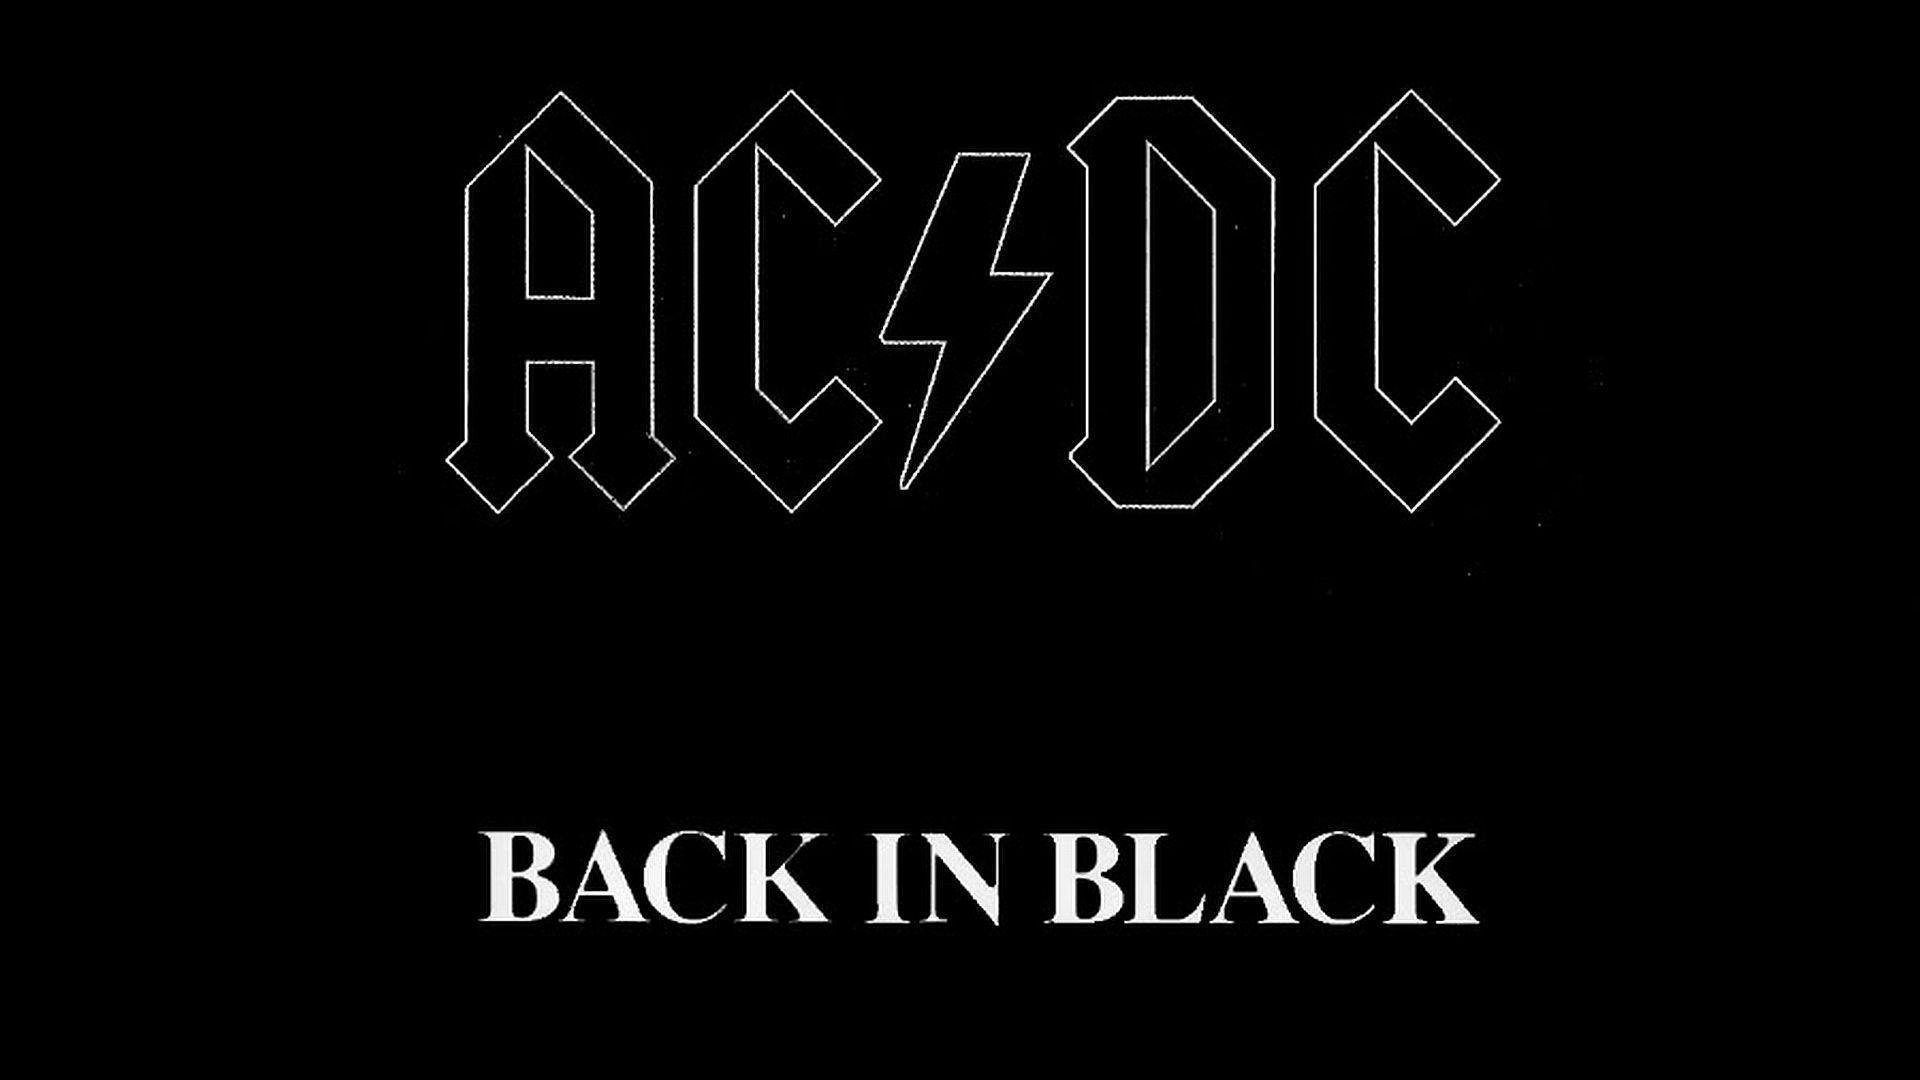 AC/DC Computer Wallpapers, Desktop Backgrounds 1920x1080 Id: 198705